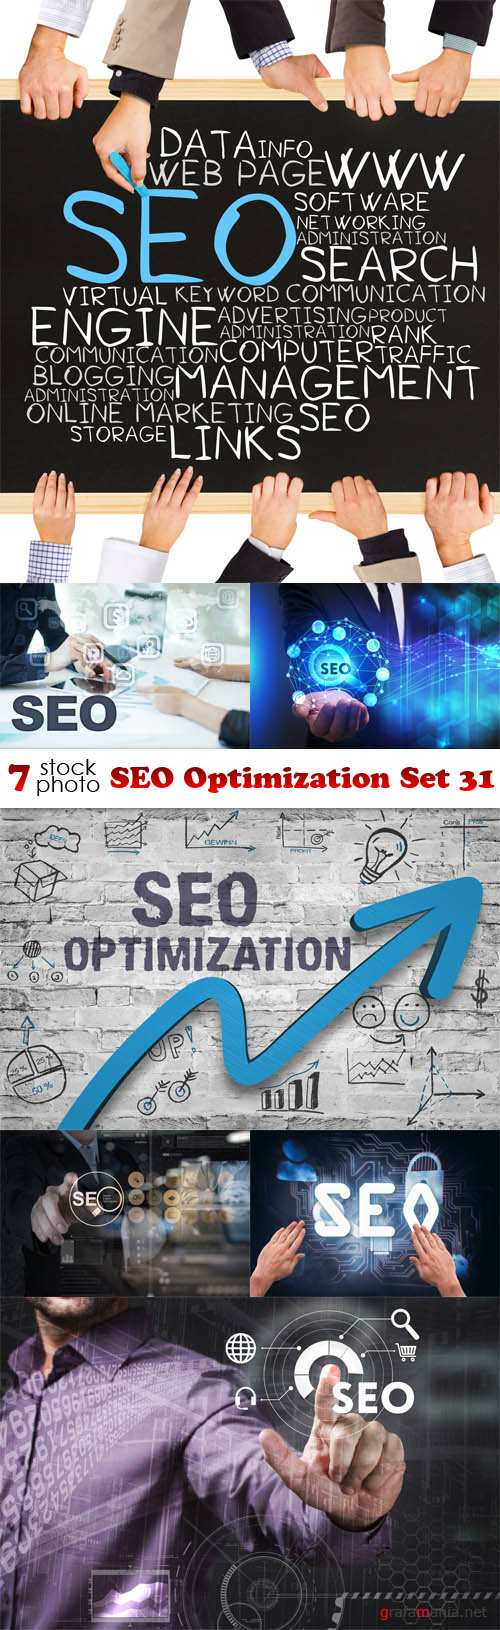 Photos - SEO Optimization Set 31